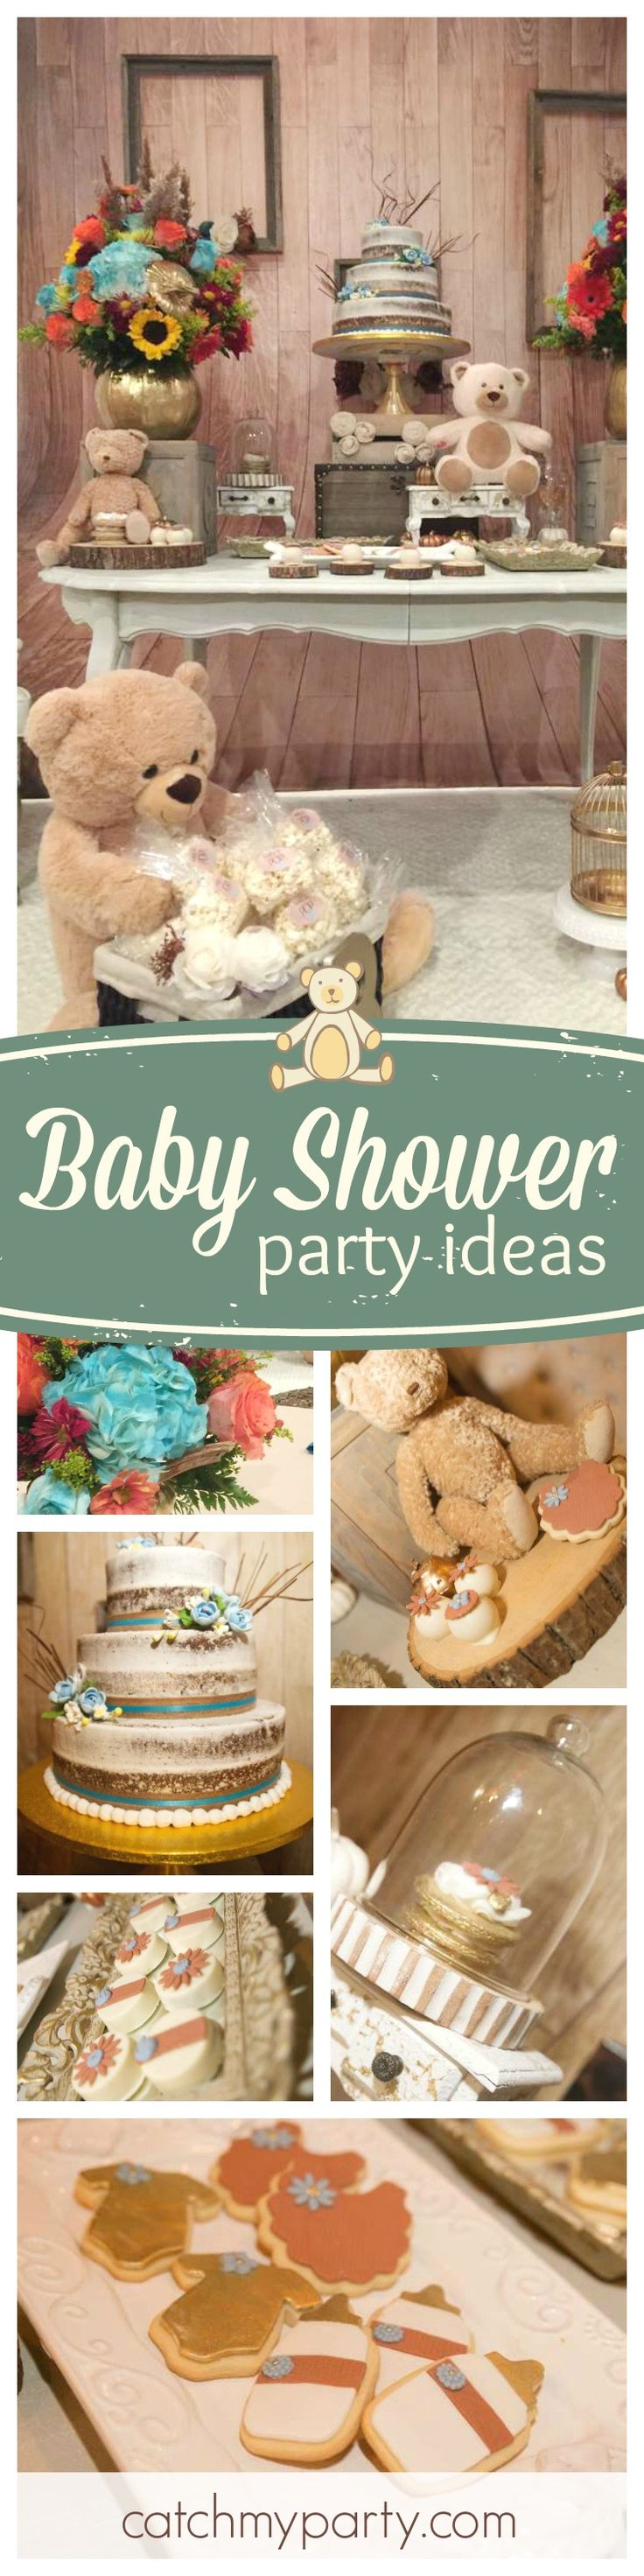 Don't miss this adorable vintage Teddy bear Baby Shower. The cake is fabulous!! See more party ideas and share yours at CatchMyParty.com